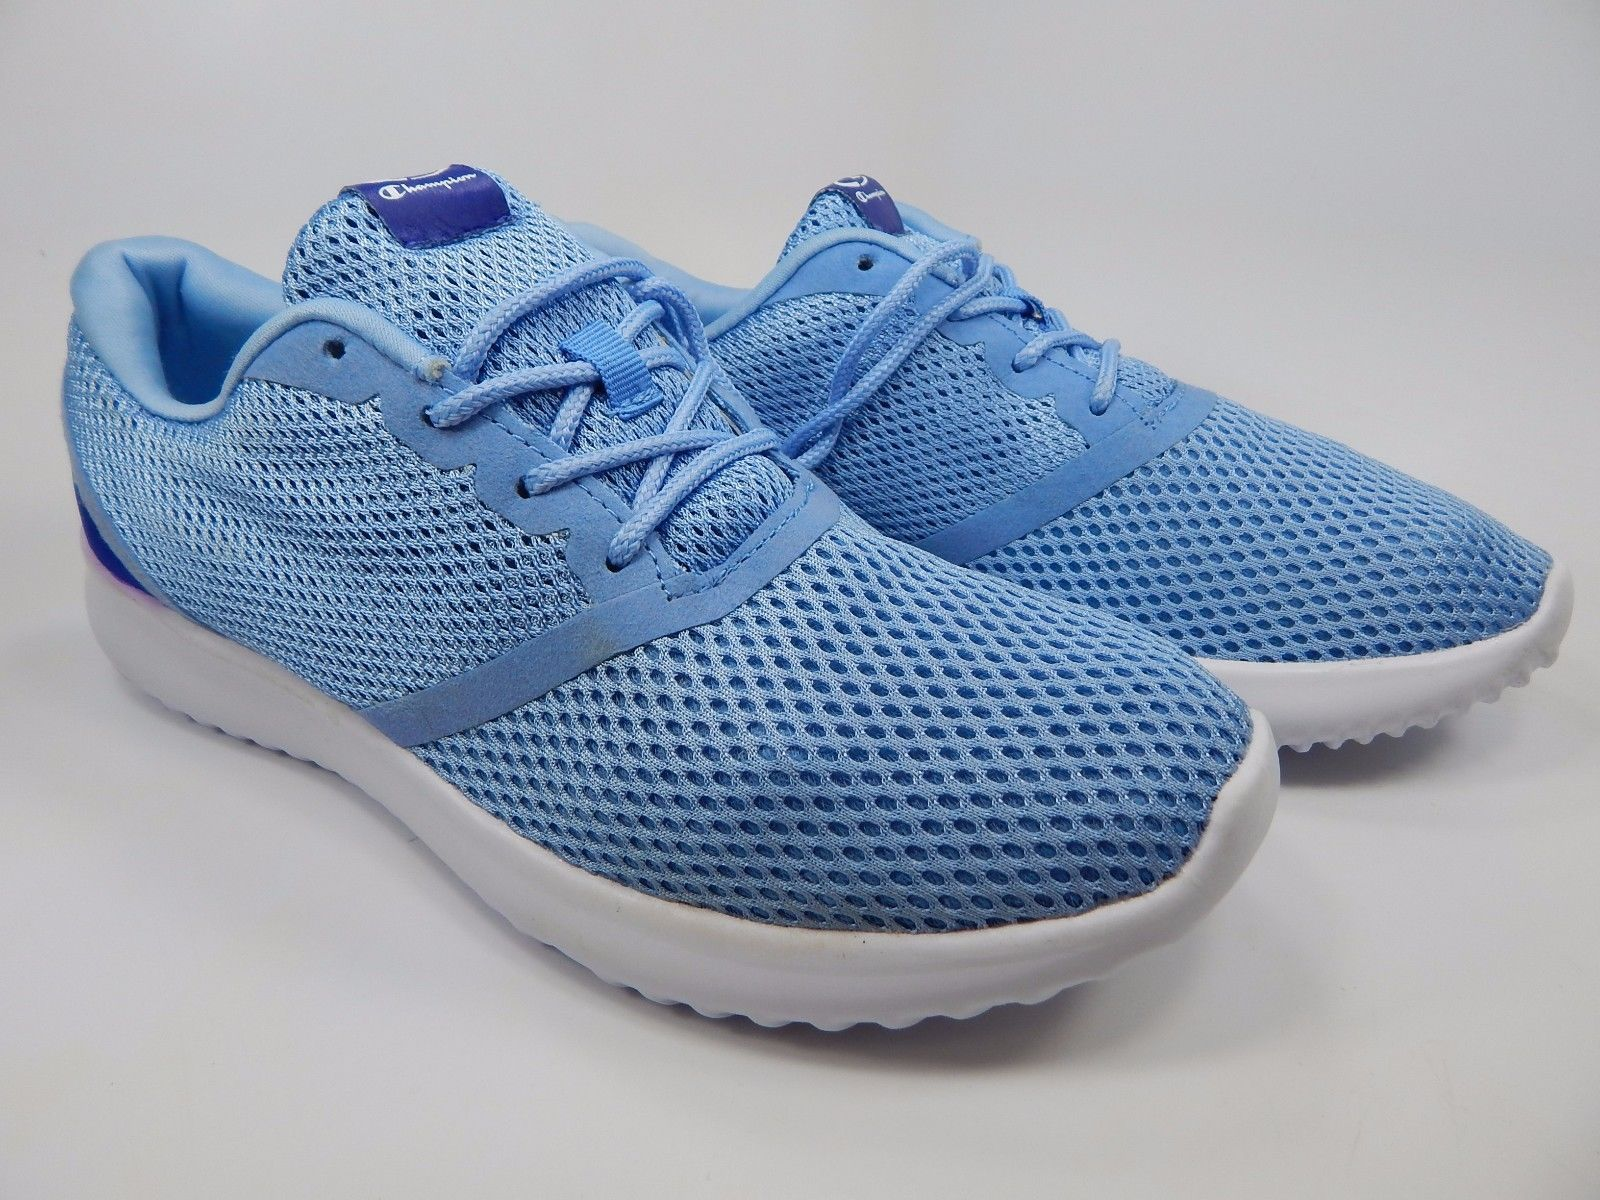 Champion Women's Athletic Sneakers Running Shoes Size US 9 M (B) EU 41.5 Blue